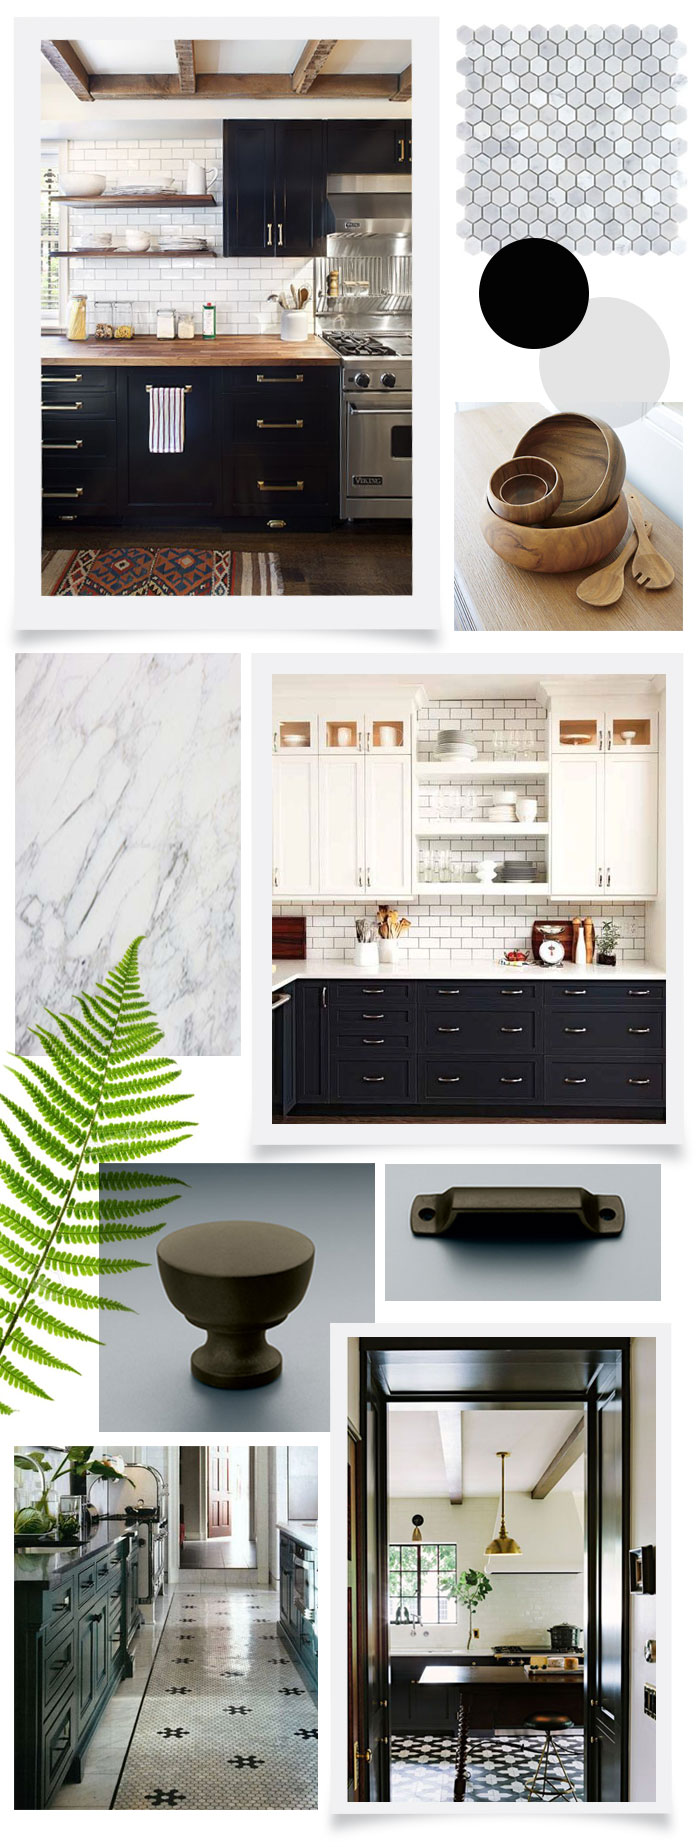 kitchen_inspiration